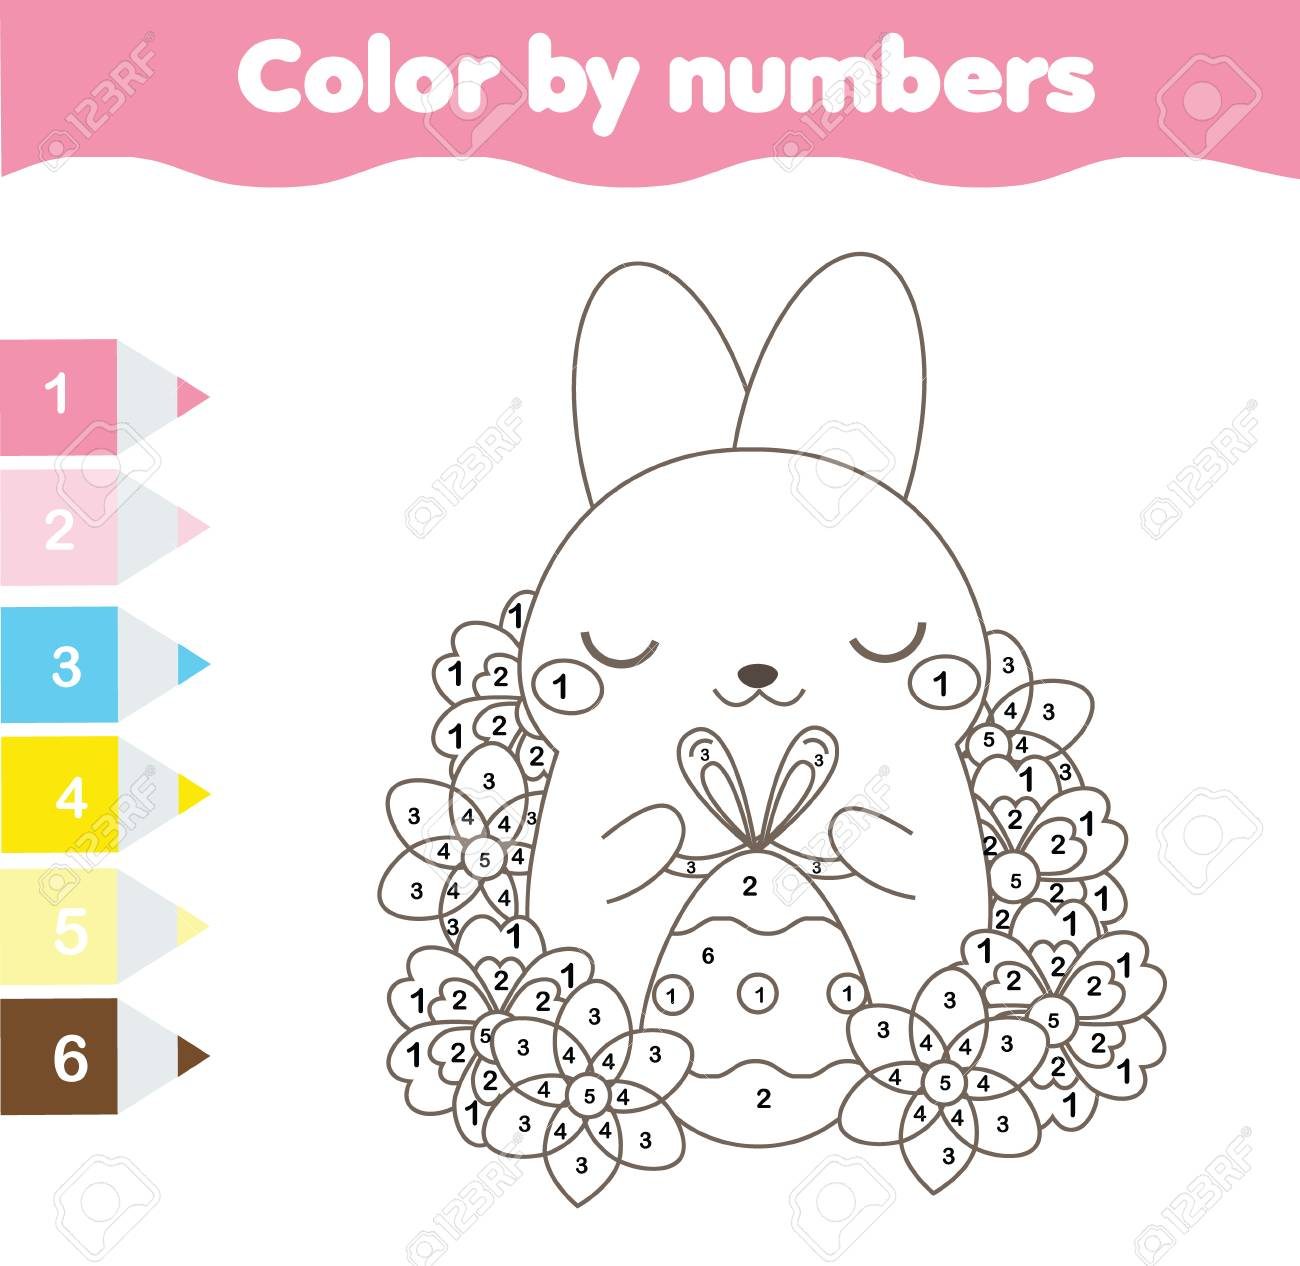 Easter Coloring Page Color By Numbers Printable Worksheet Royalty Free Cliparts Vectors And Stock Illustration Image 98025518